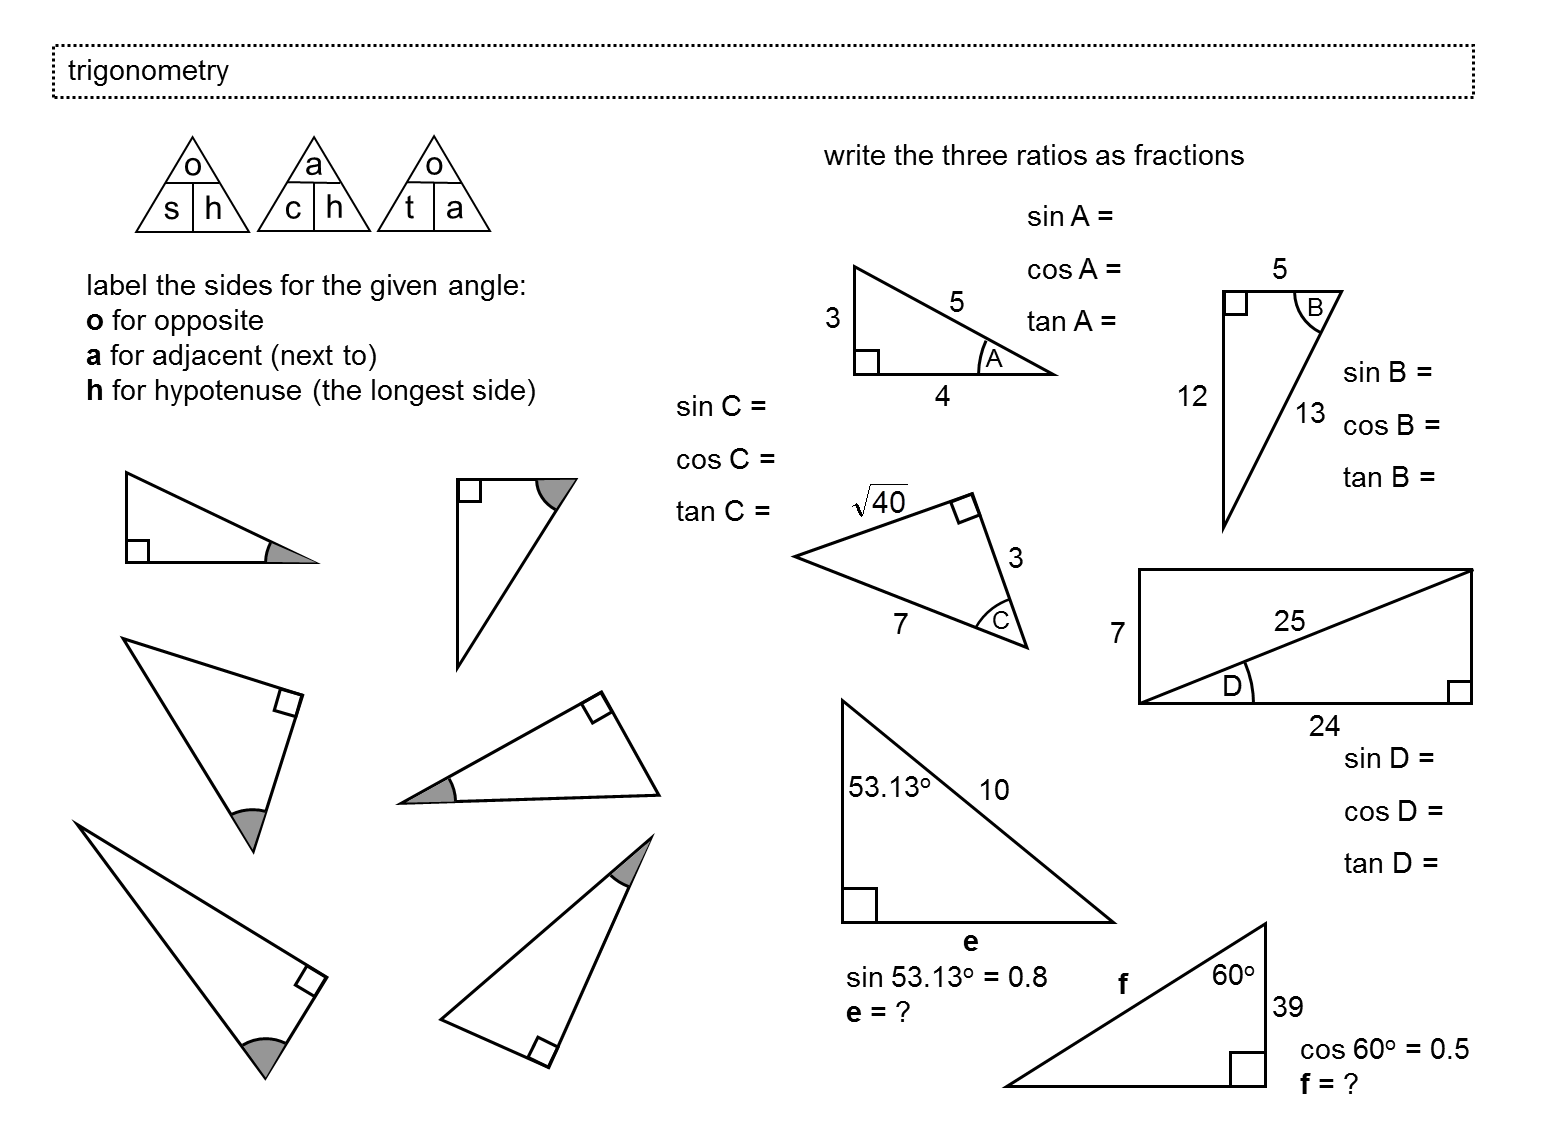 Trigonometry in RightAngled Triangles – Angle of Elevation Worksheet